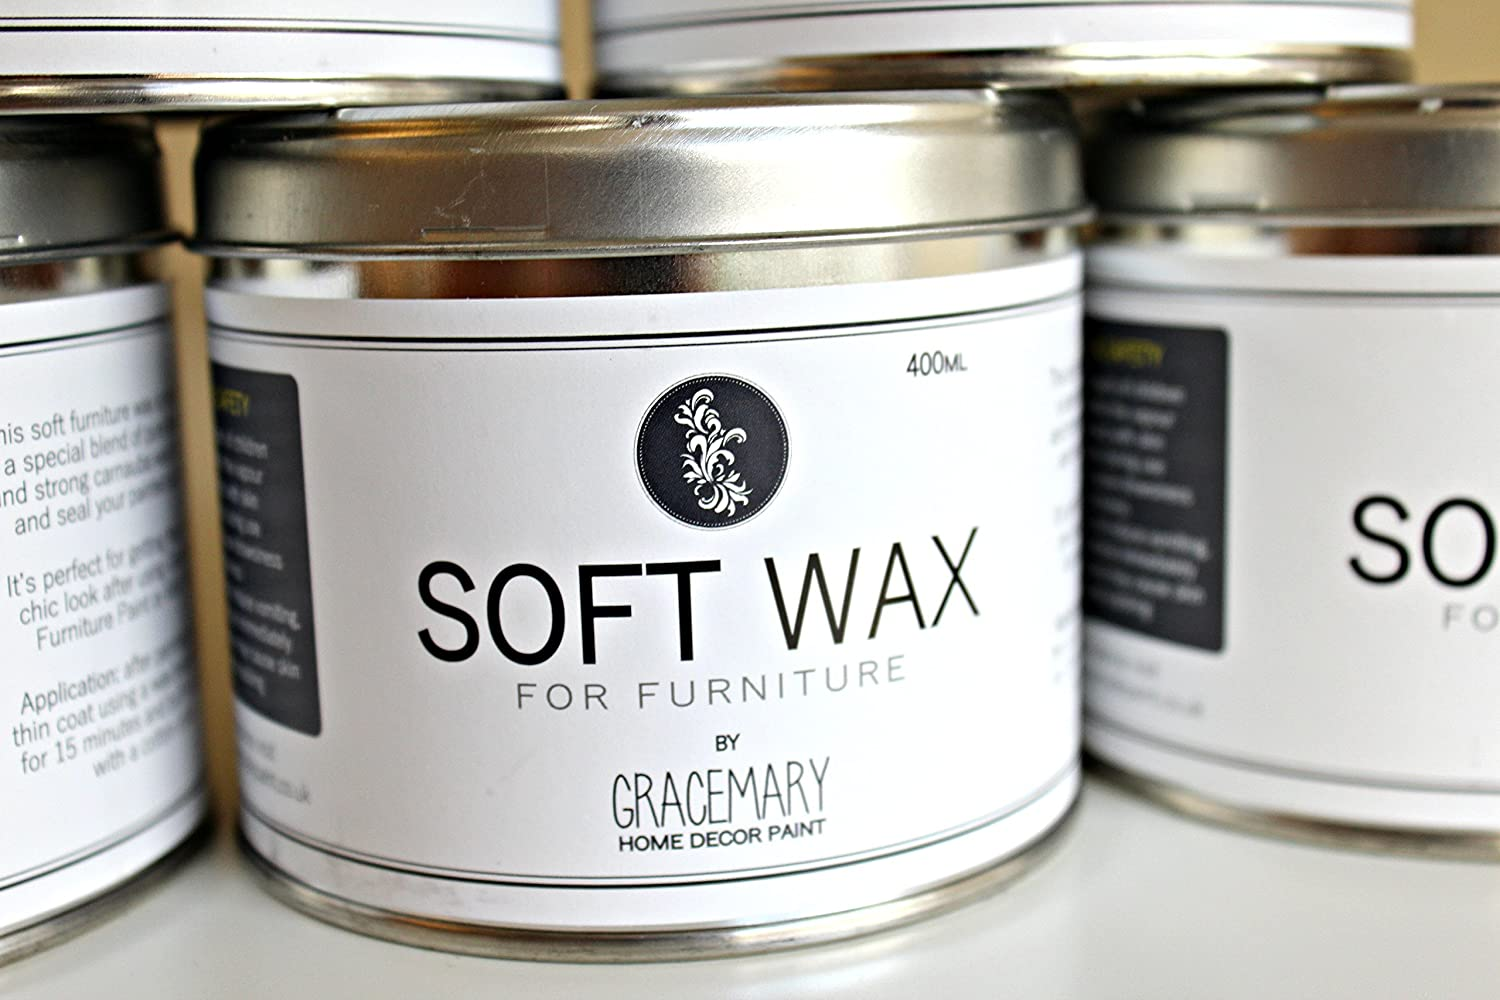 GraceMary Soft Wax 400ml for waxing chalk paint & furniture - makes waxing easy! (Clear)